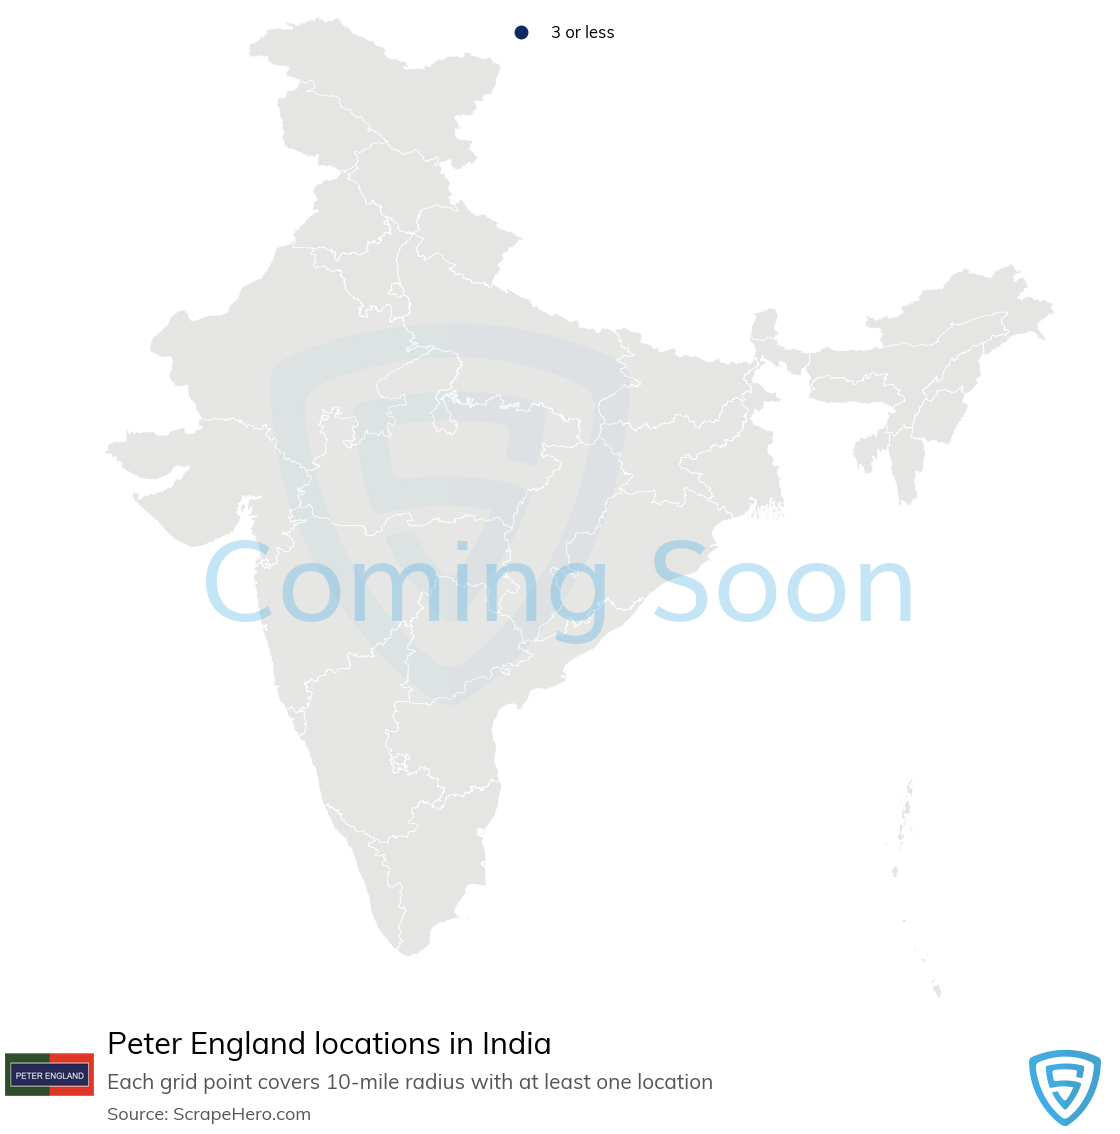 Peter England Store locations in India